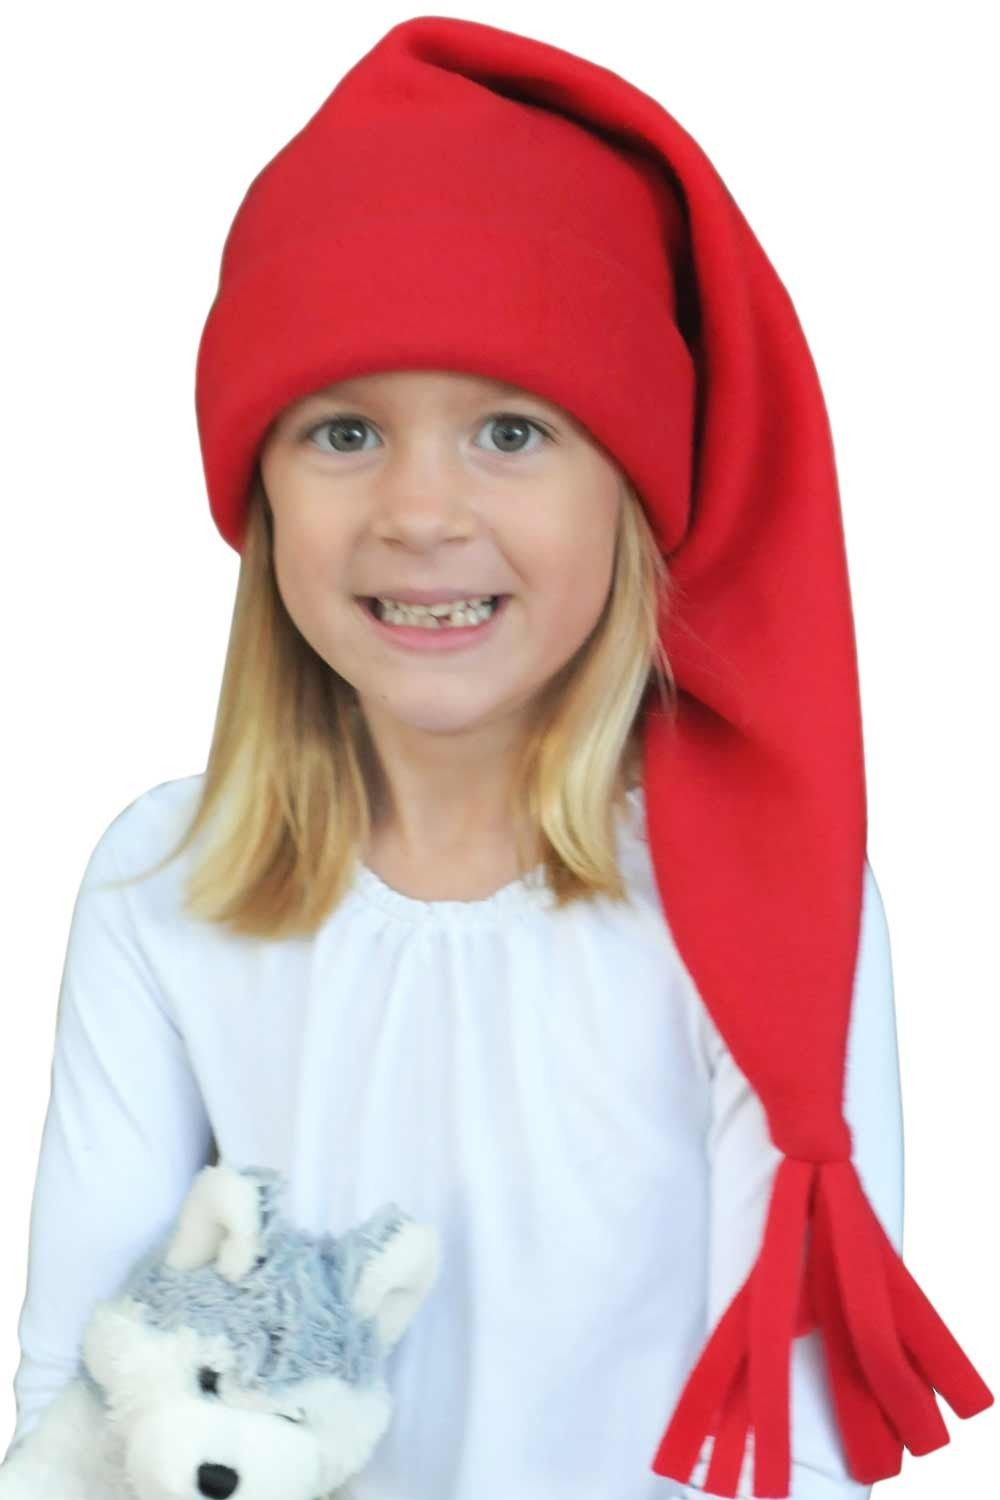 Fleece Santa cap for kids - classic elf stocking cap. Perfect for the  holidays! ea516825b74